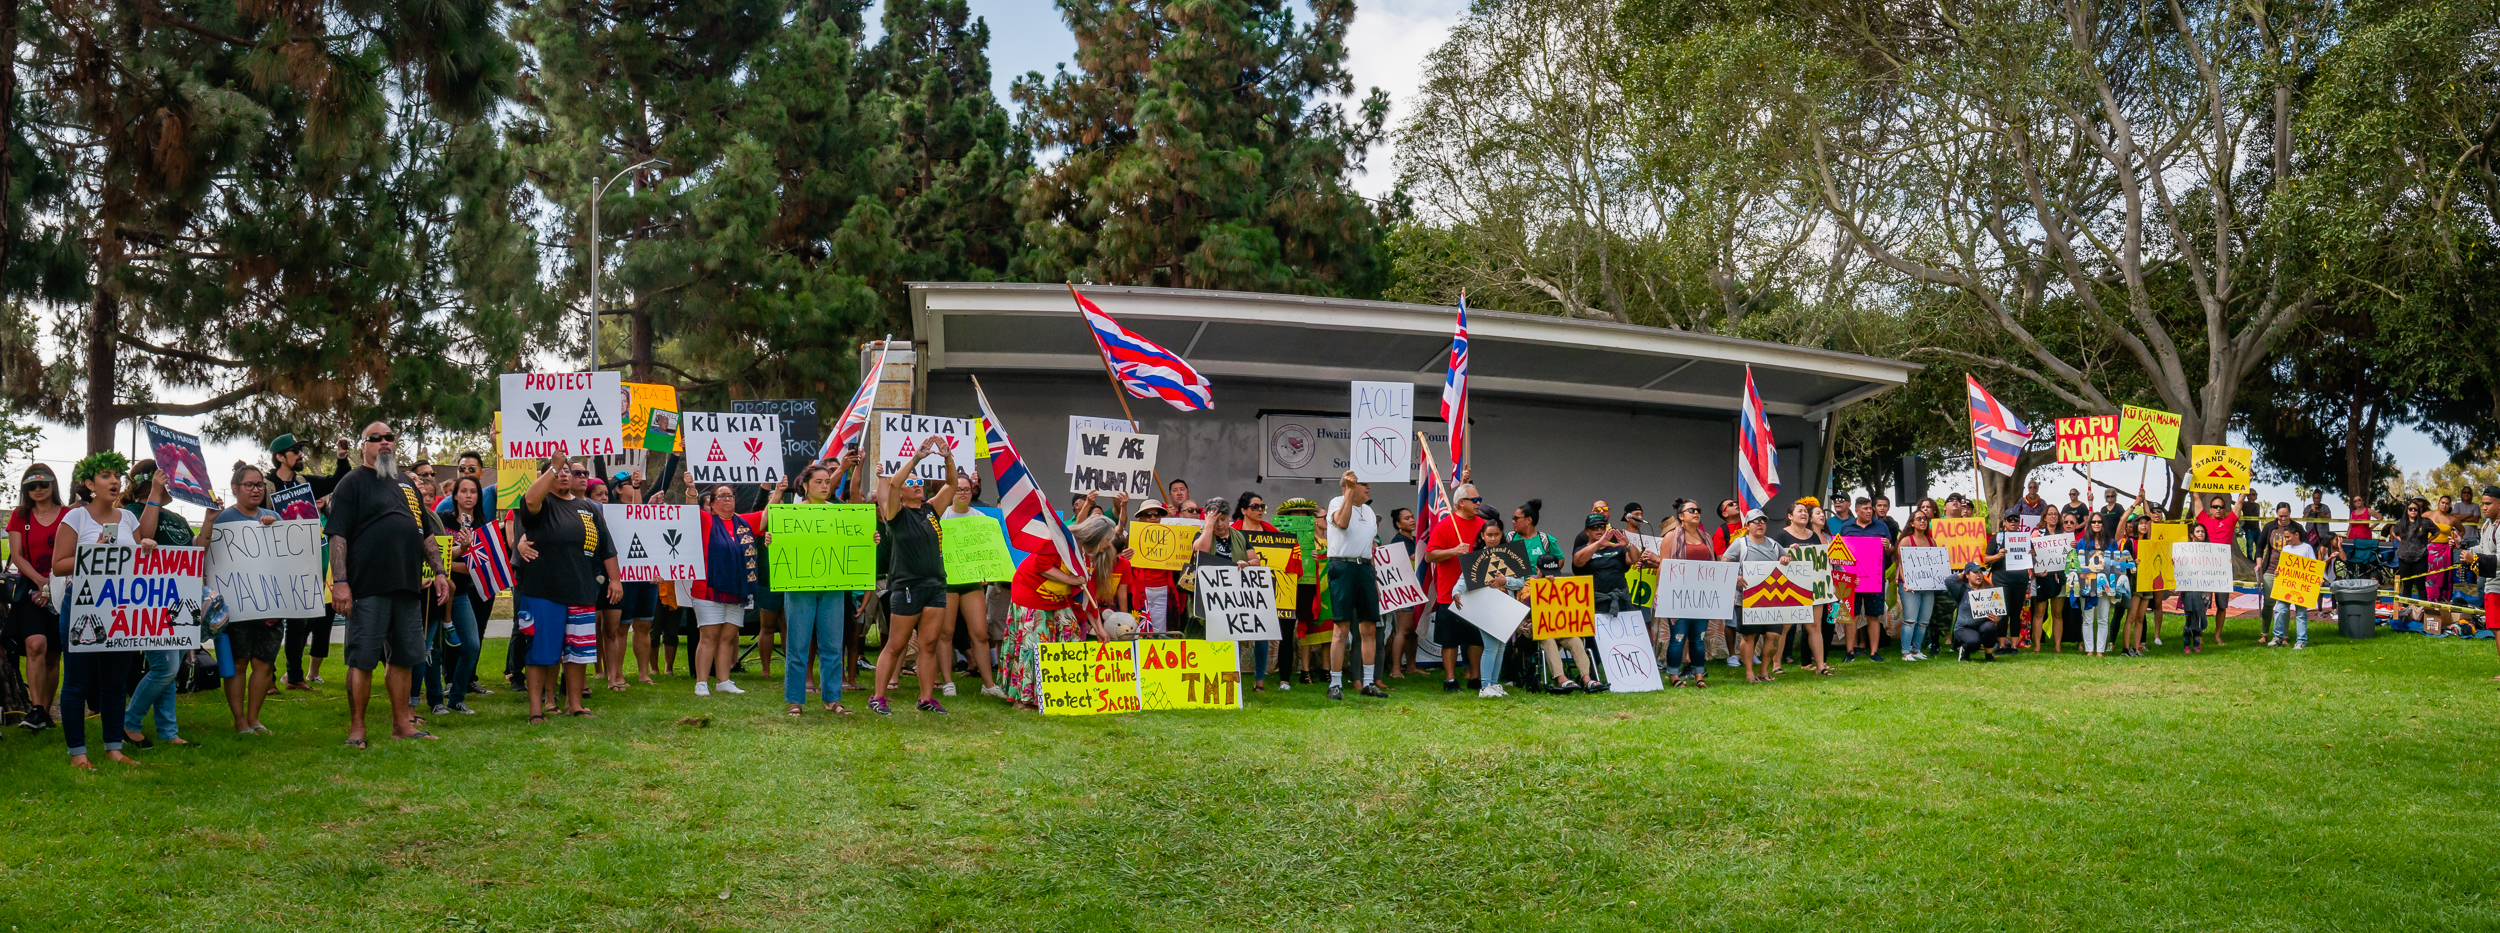 mauna kea protectors gather at Alondra Park in Los Angeles on July 20